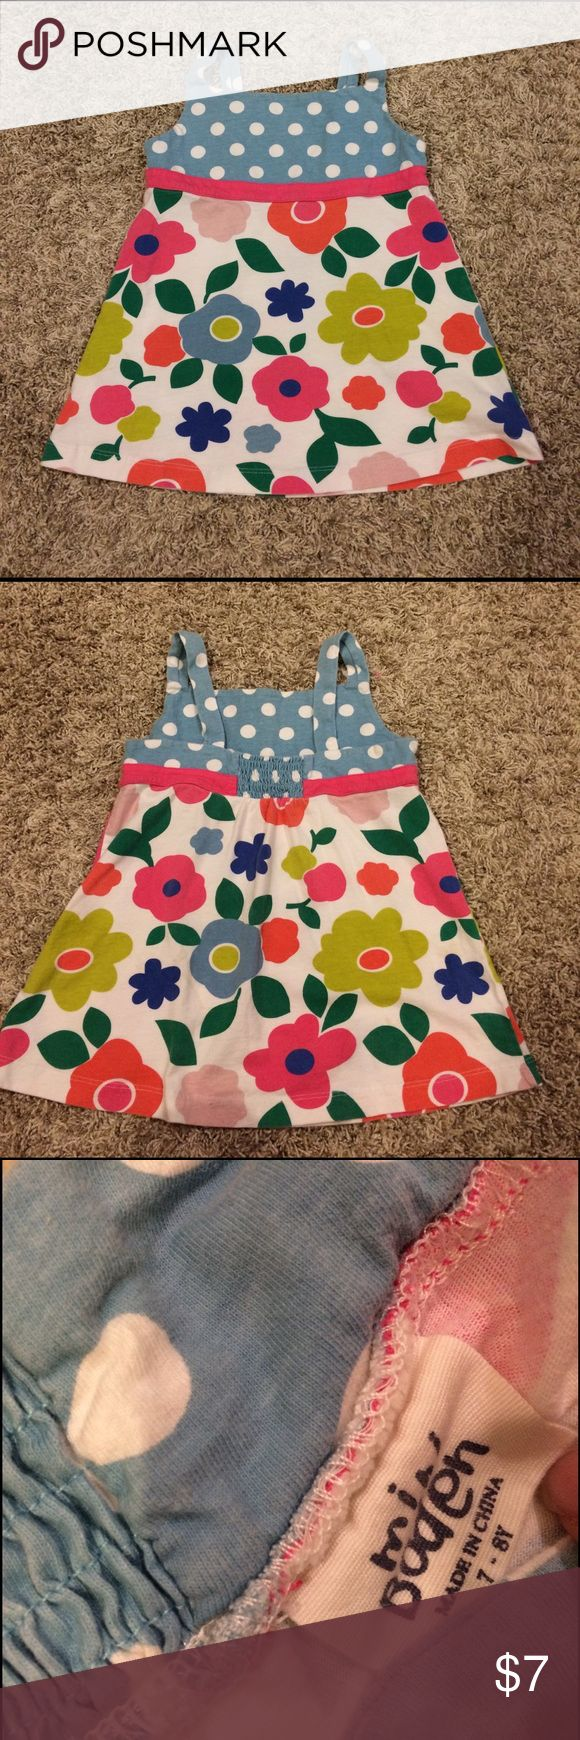 Mini Boden girls Floral tank size 7-8 Mini Boden girls Floral tank size 7-8.  Perfect used condition Mini Boden Shirts & Tops Tank Tops